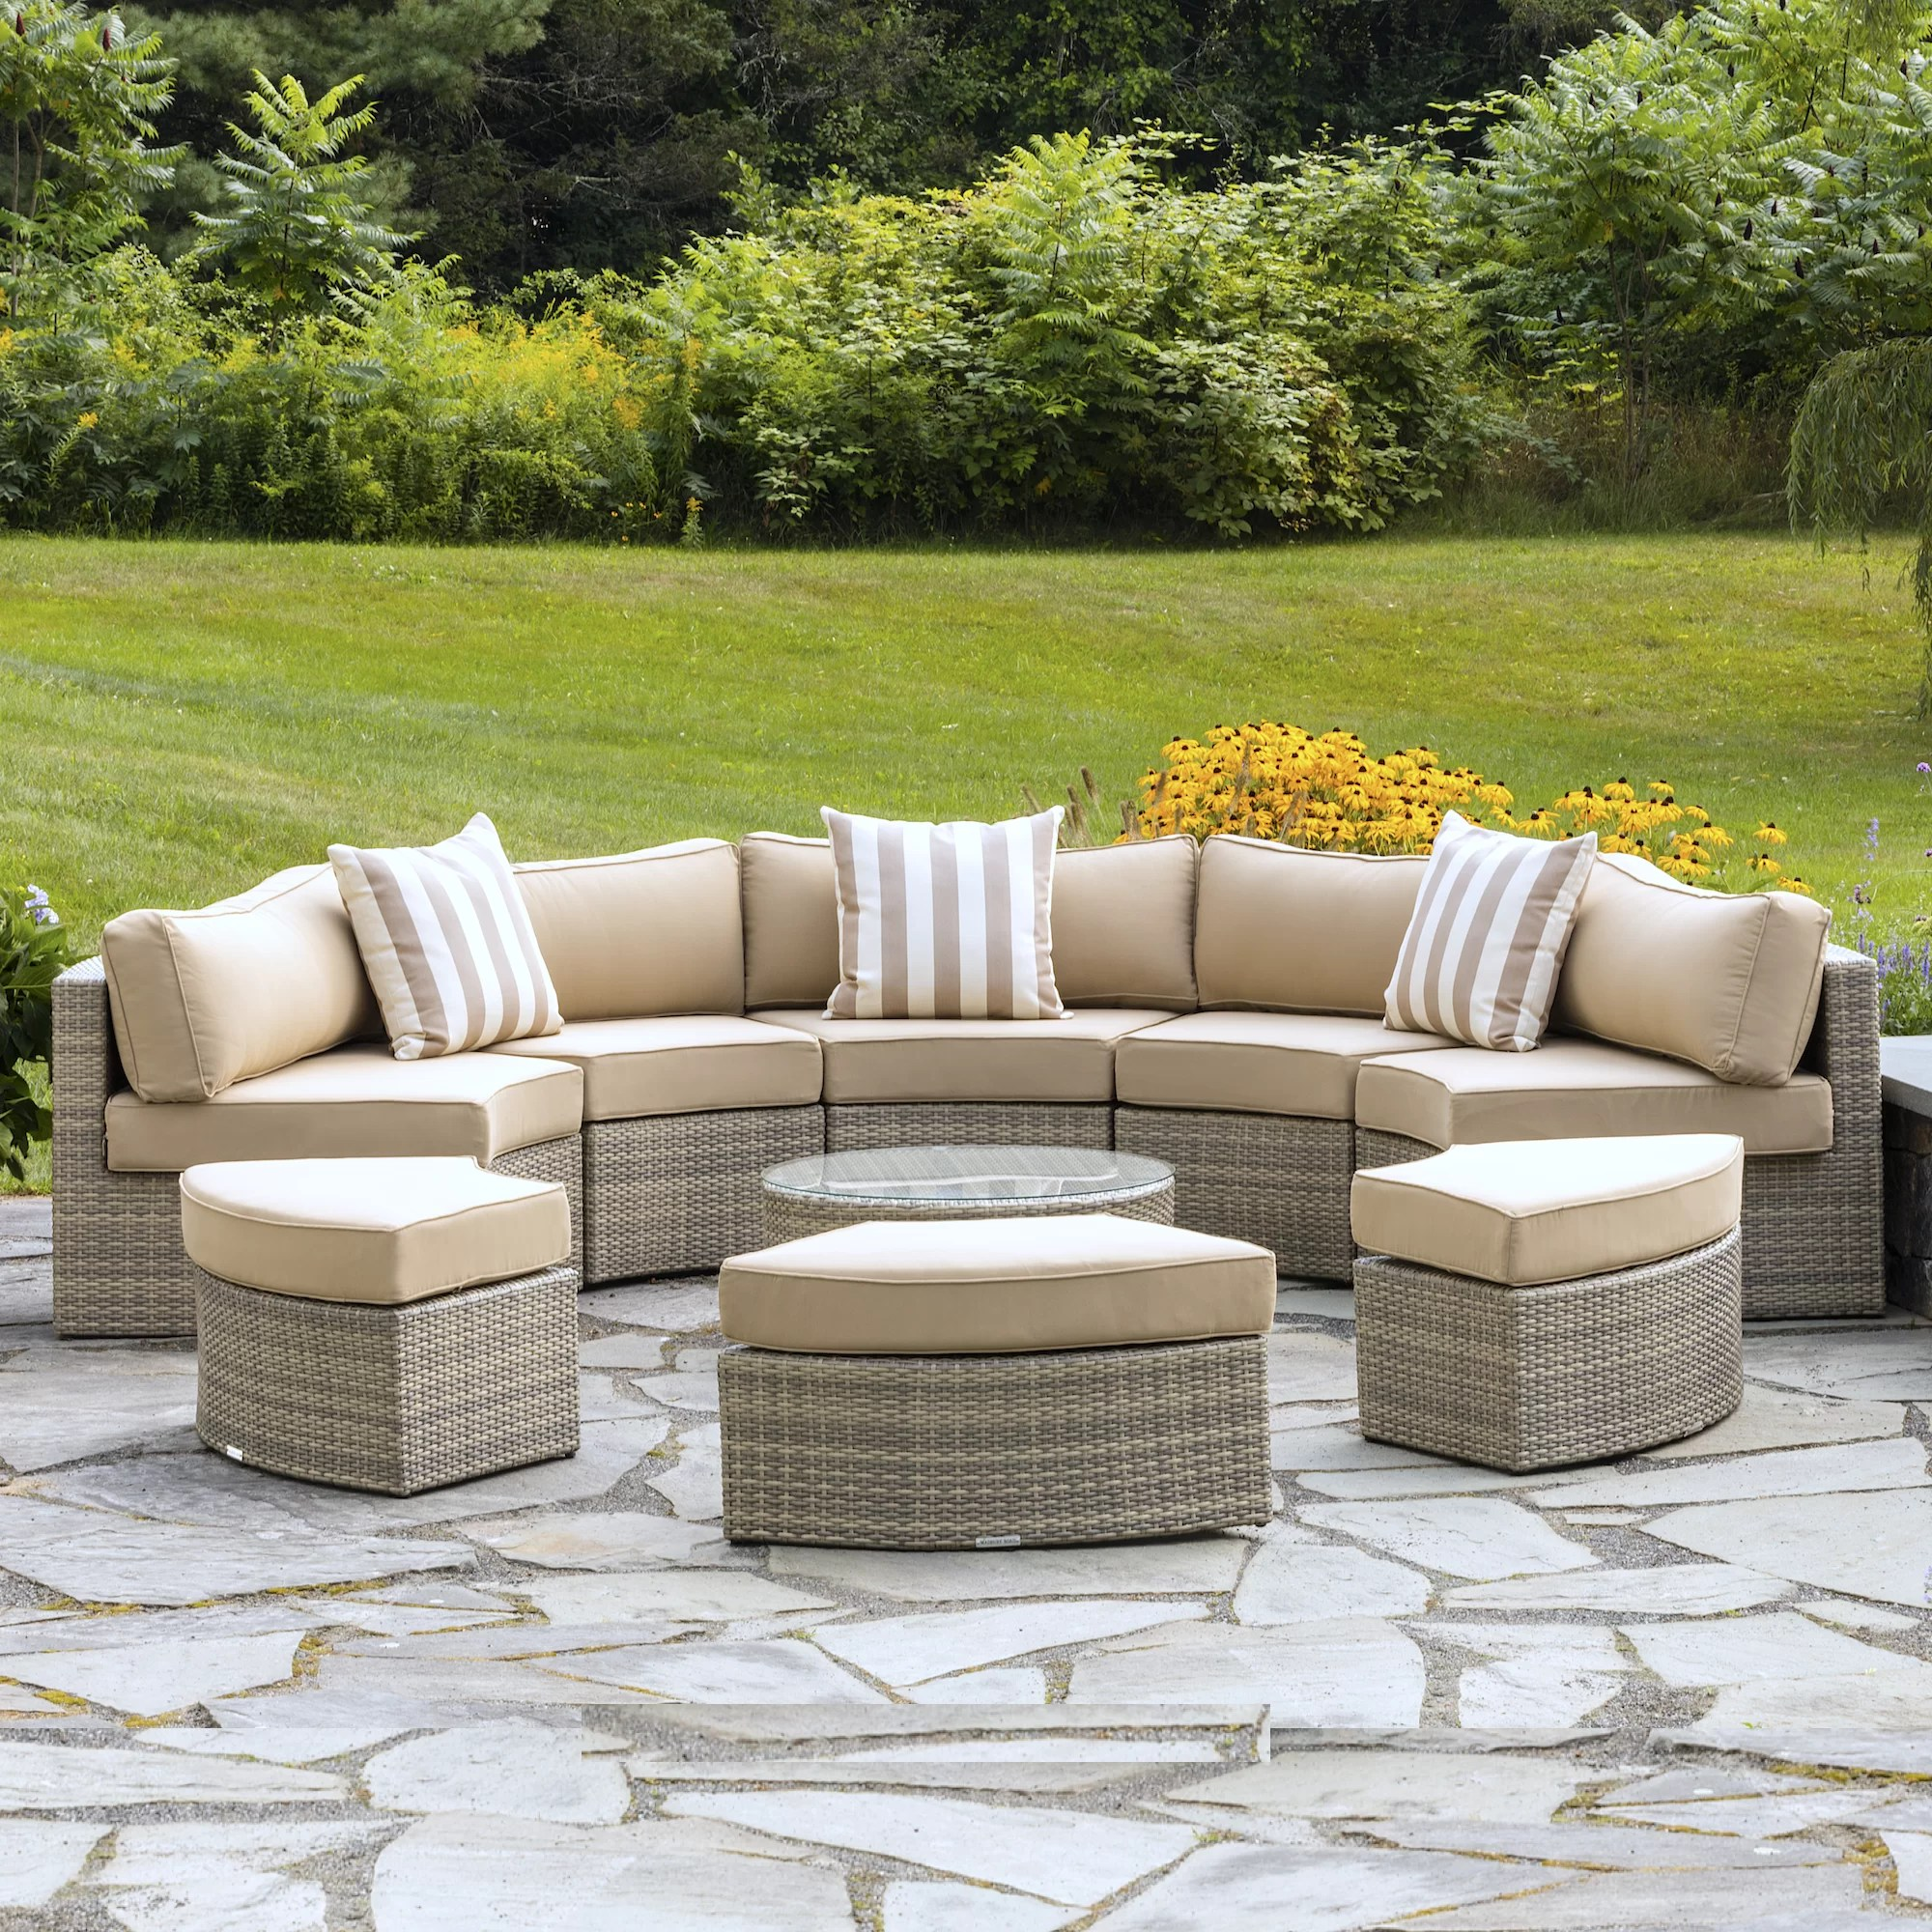 santorini 5 piece rattan sectional seating group with cushions